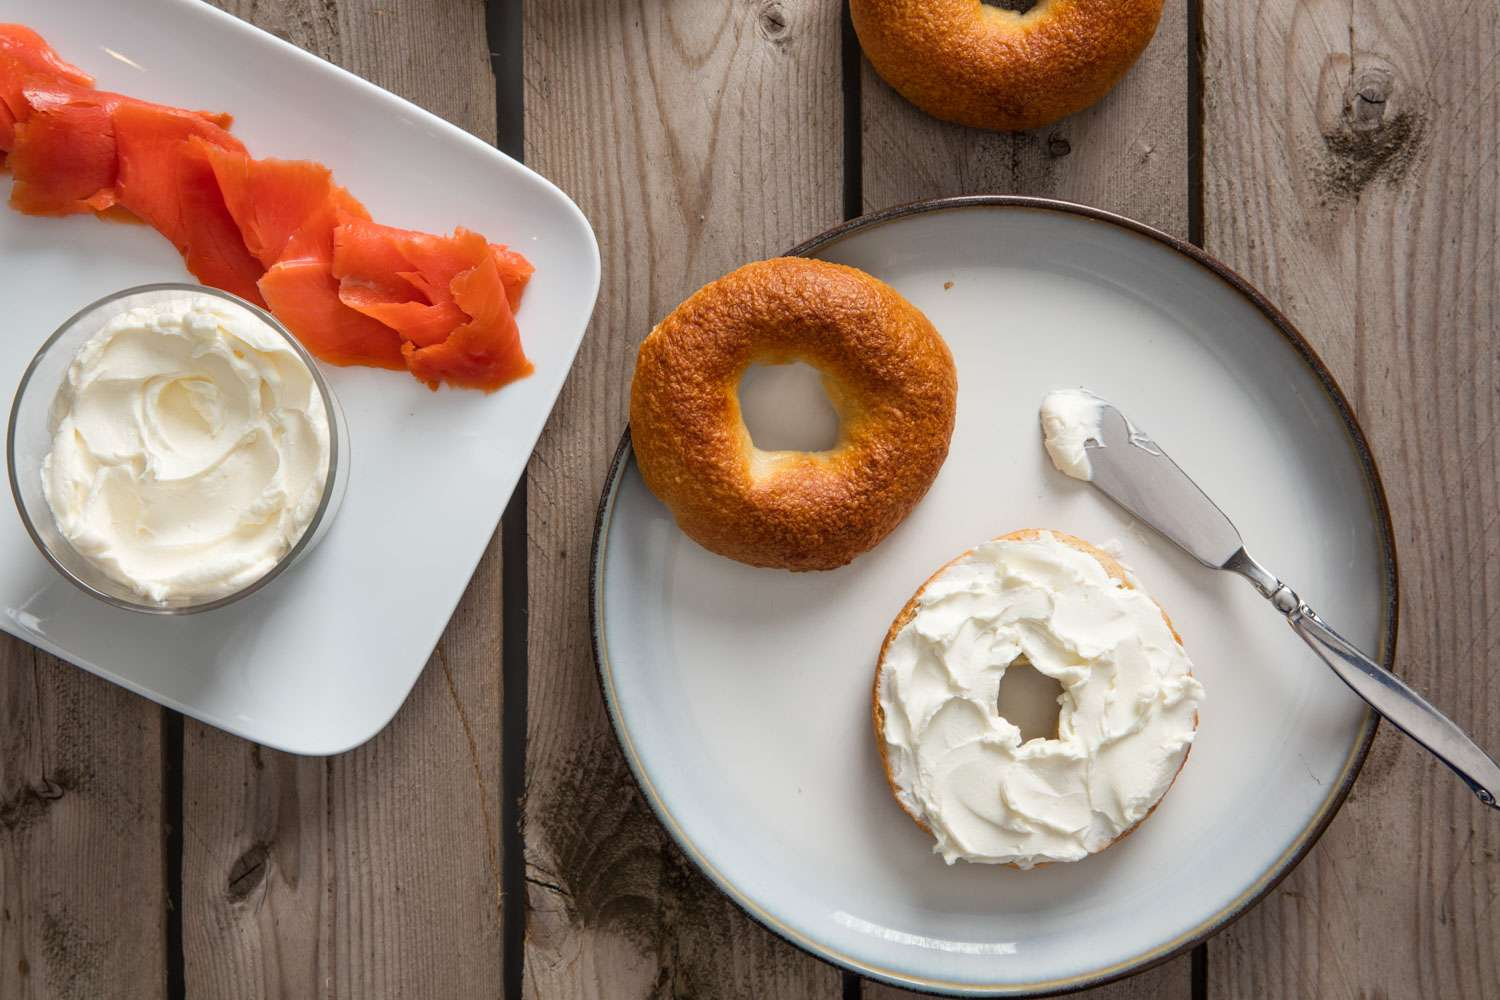 A split bagel on a white plate topped with cream cheese. A platter of cream cheese and lox on the side.